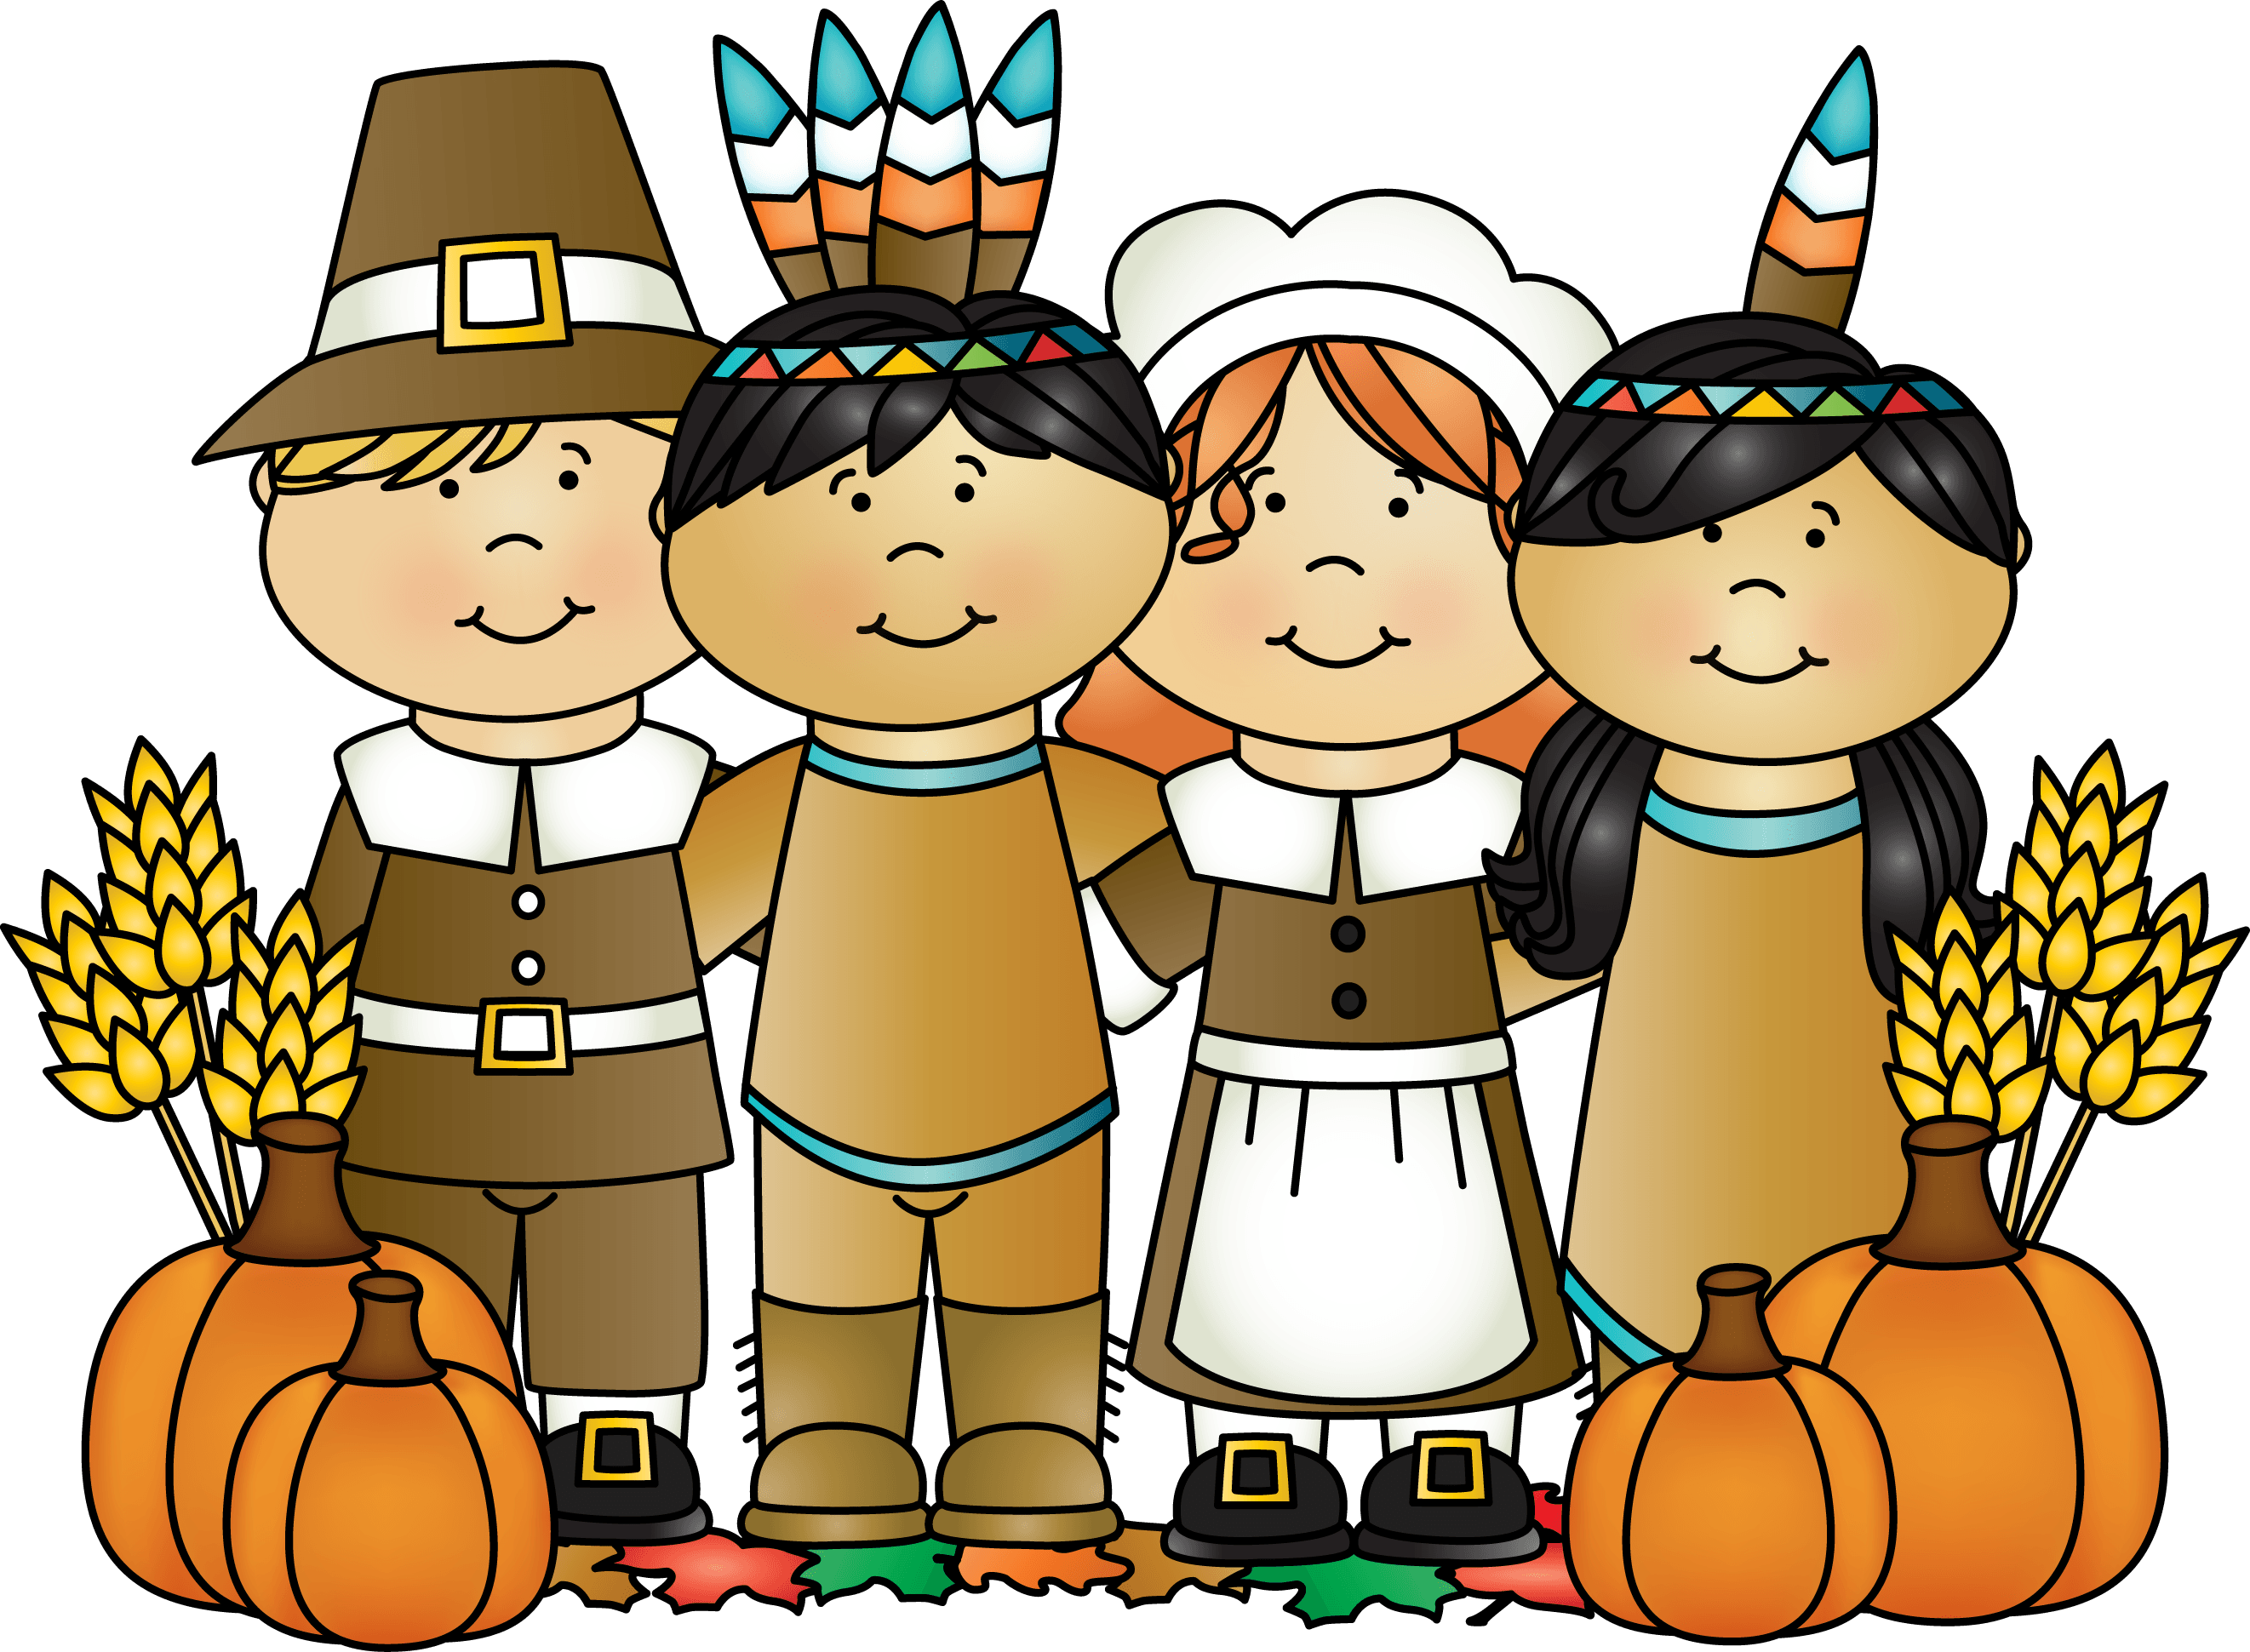 Thanksgiving clipart funny png transparent download 28+ Collection of Dj Inkers Thanksgiving Clip Art | High quality ... png transparent download